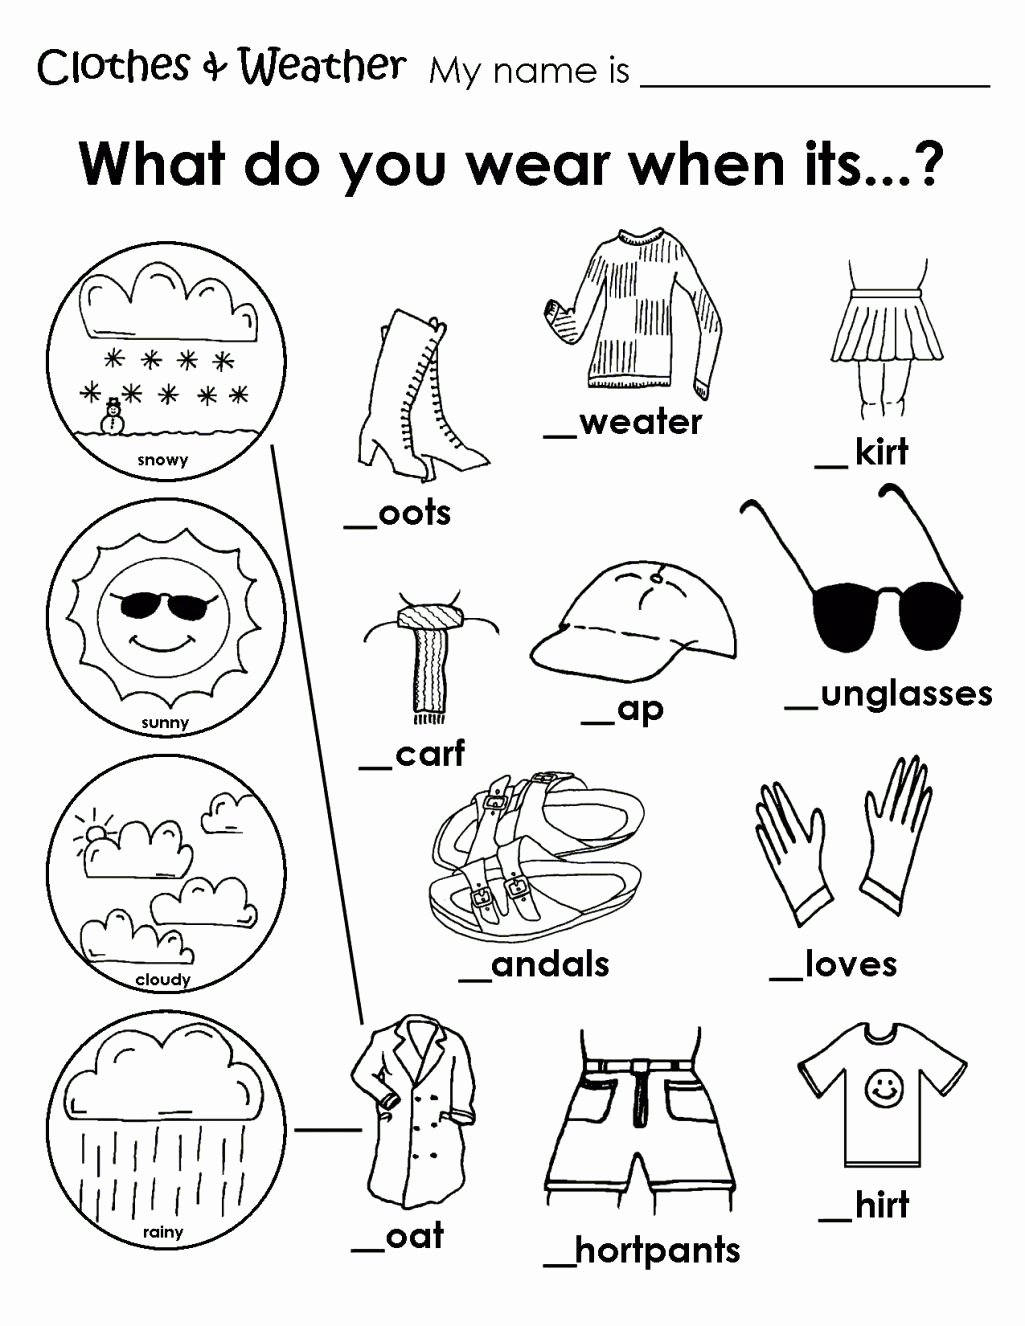 Free Printable Weather Worksheets for Preschoolers Inspirational Printable Weather Clothes Worksheet